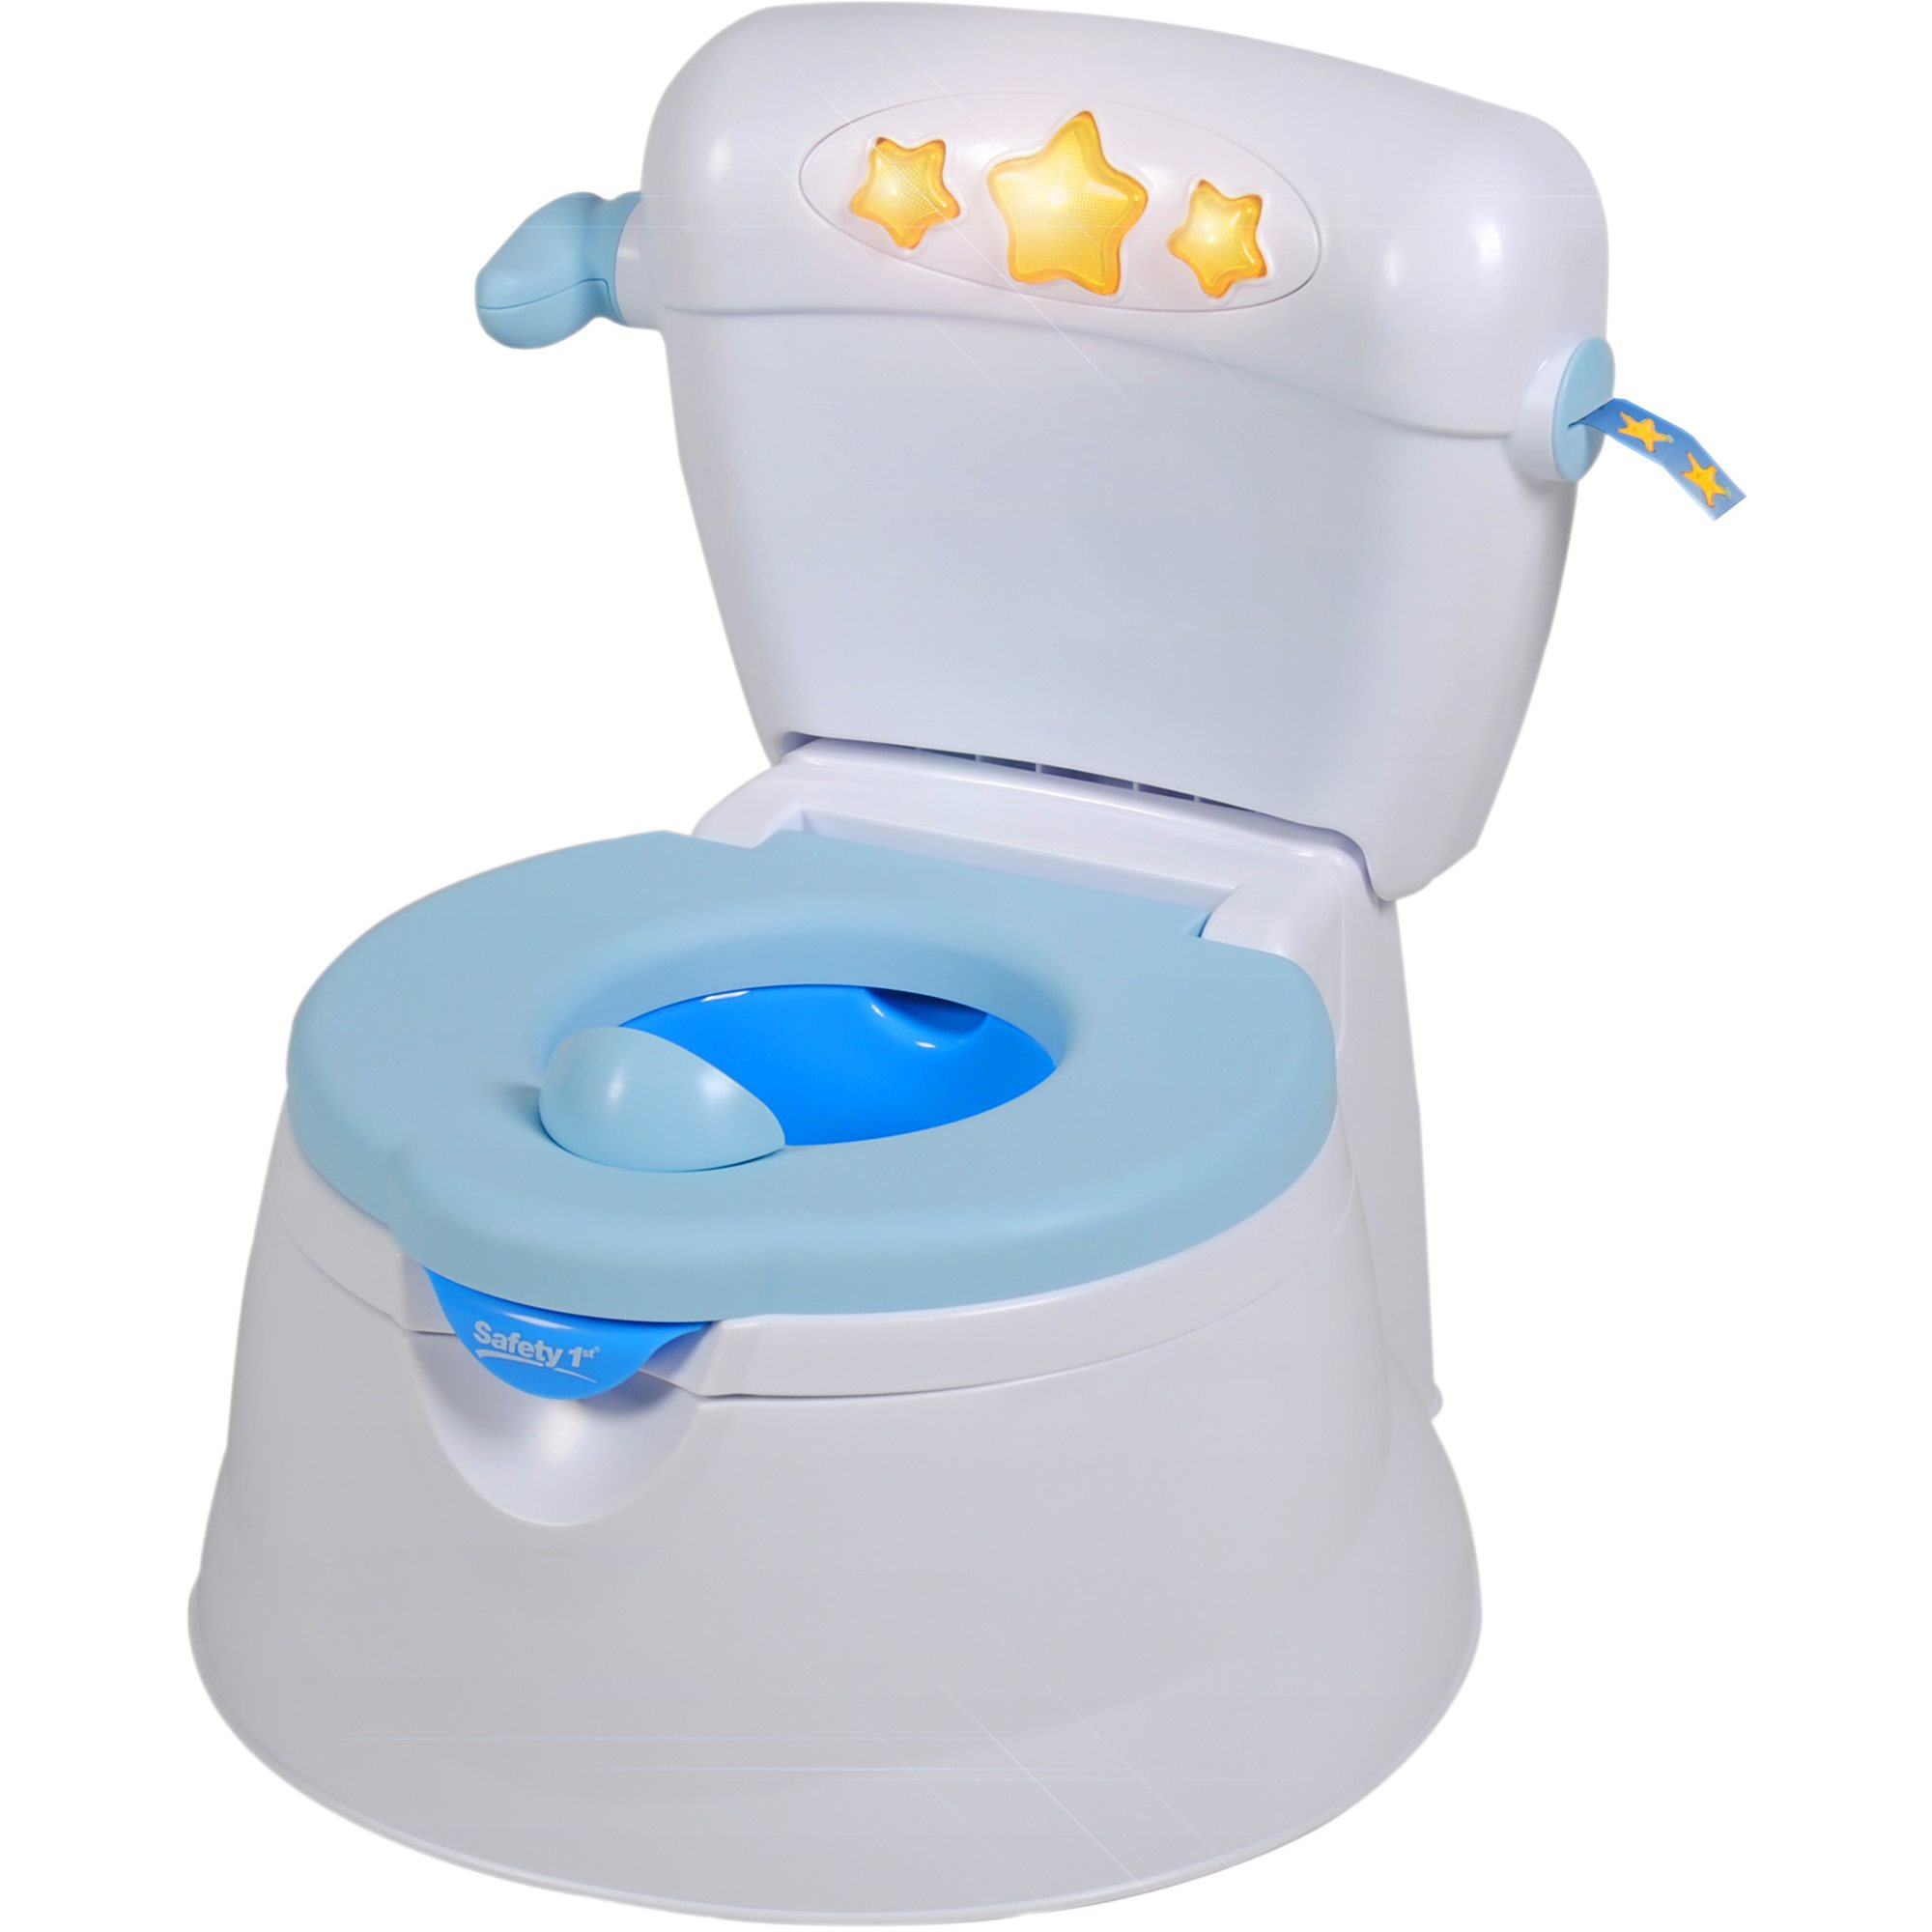 The more colourful a potty is, the more attracted and attached your toddler becomes to it